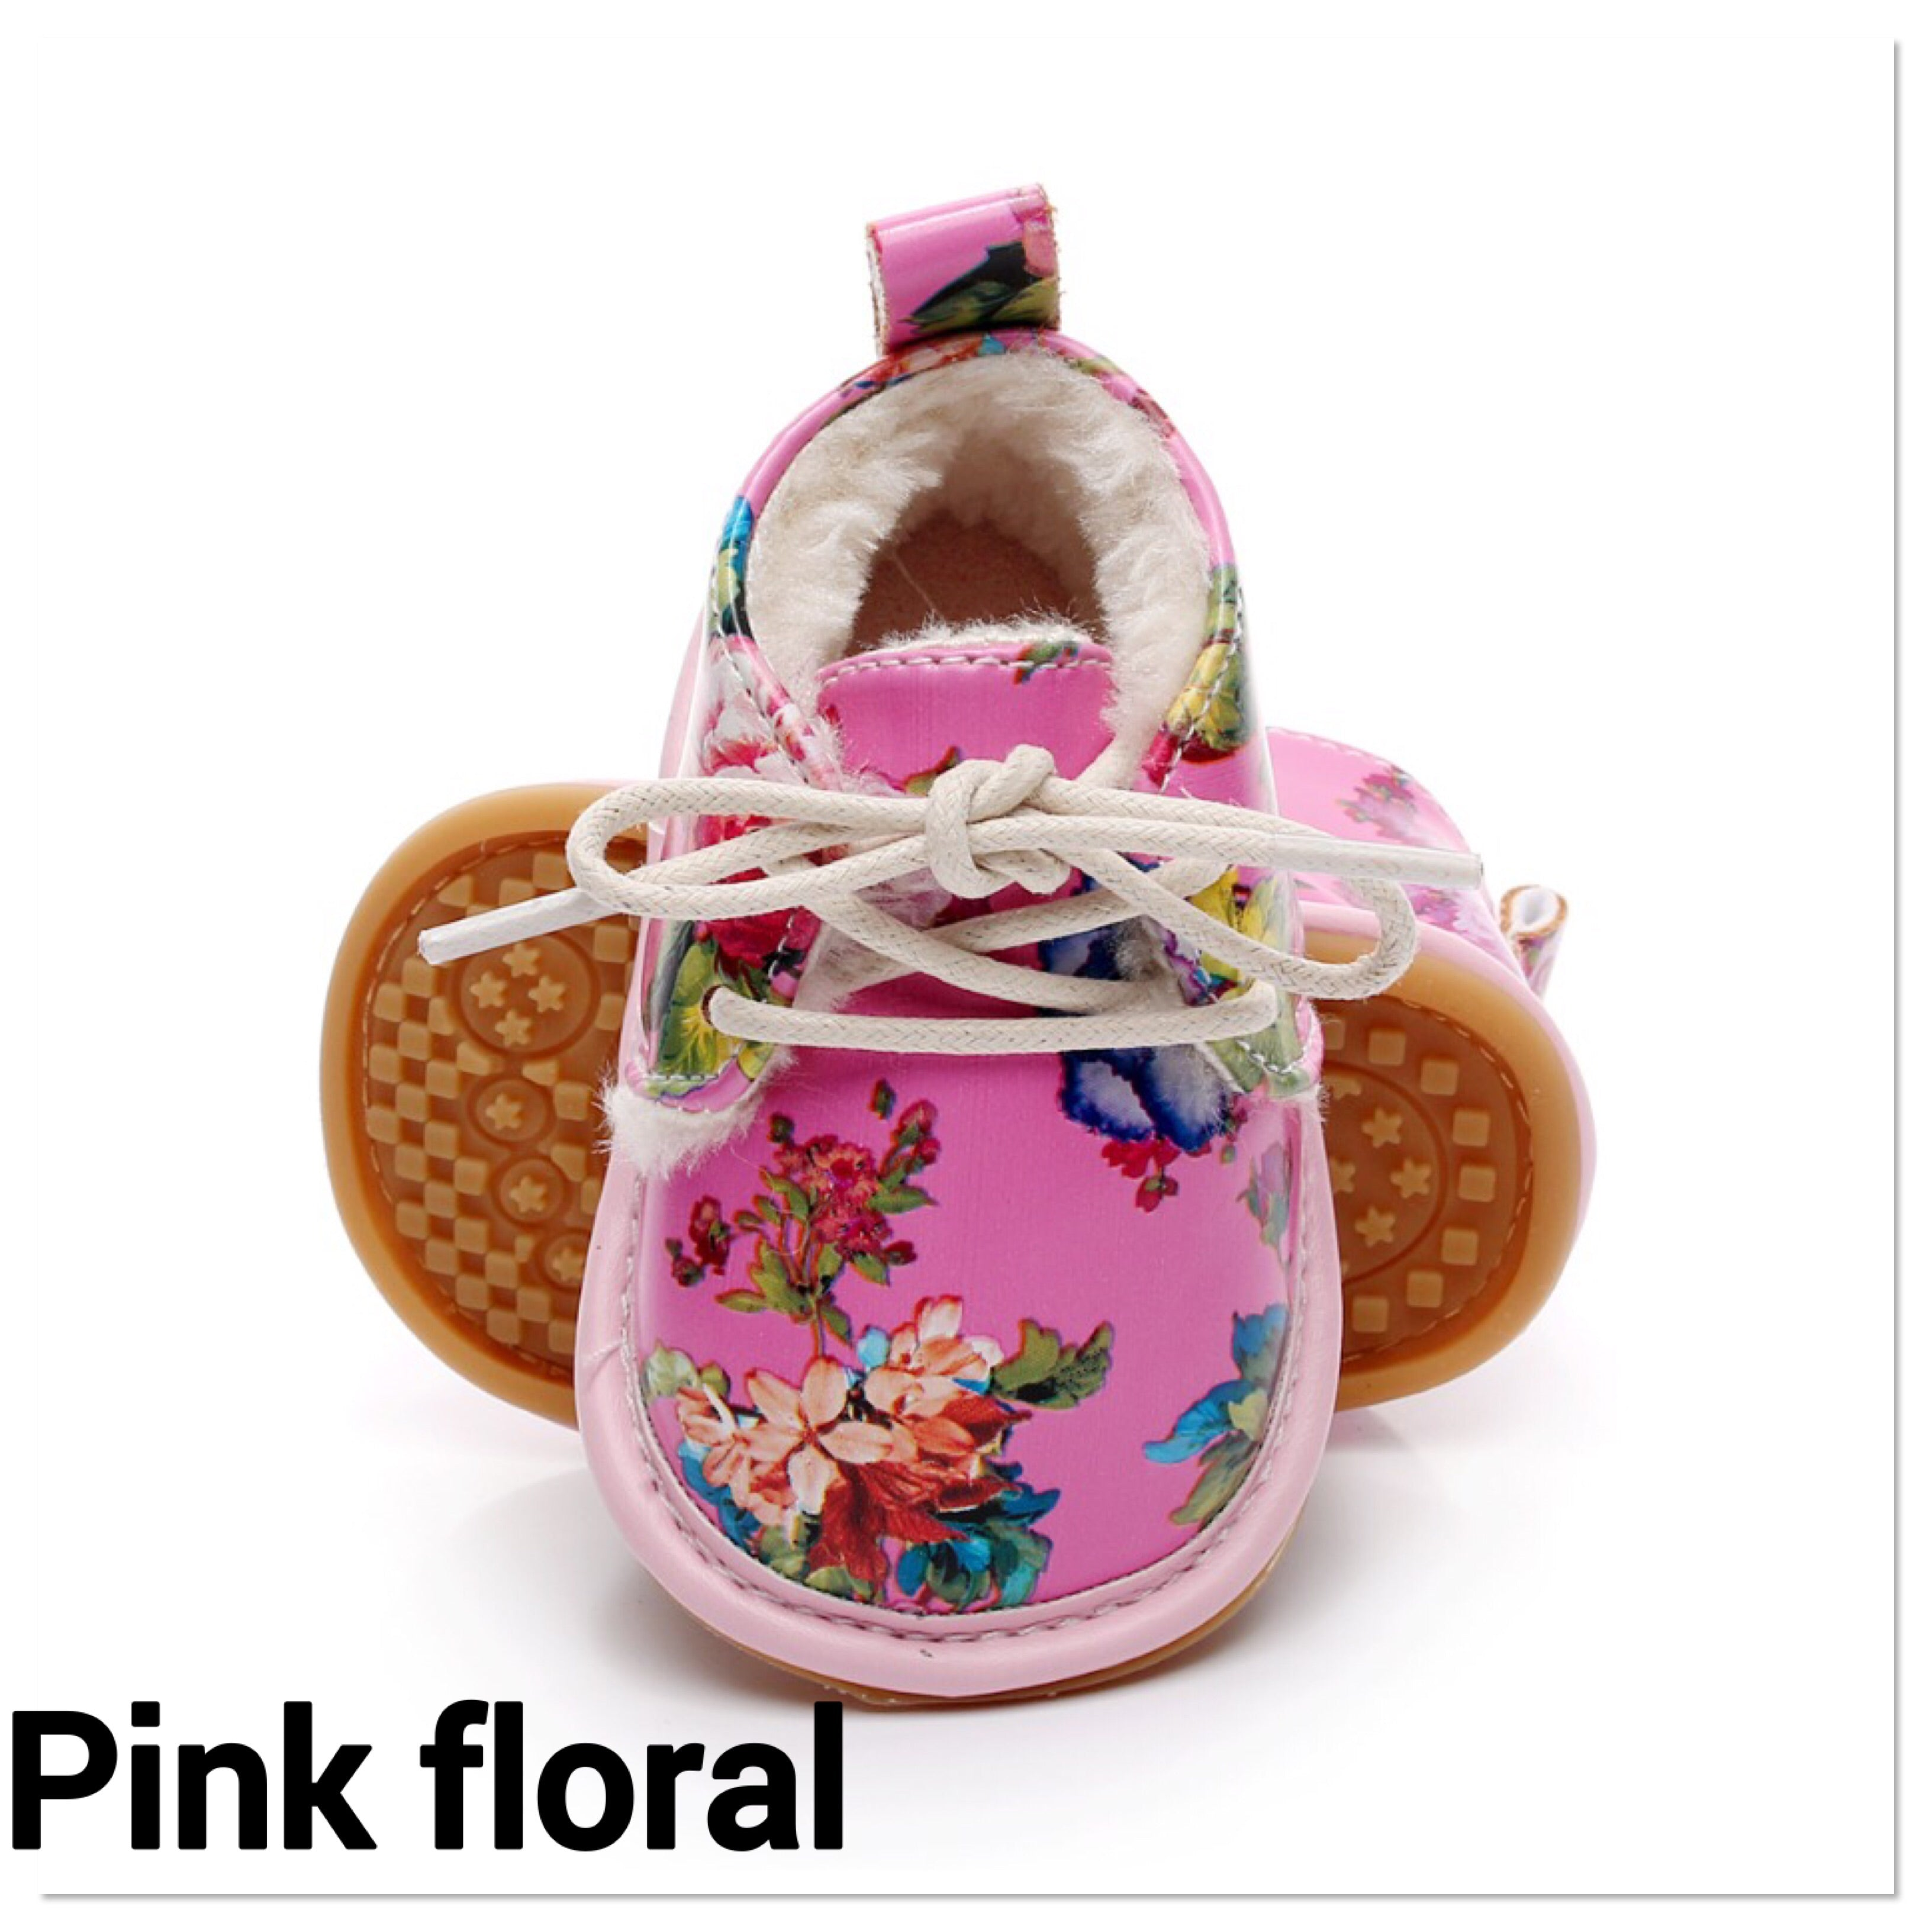 Soft lined lace up shoes (0-24 months)